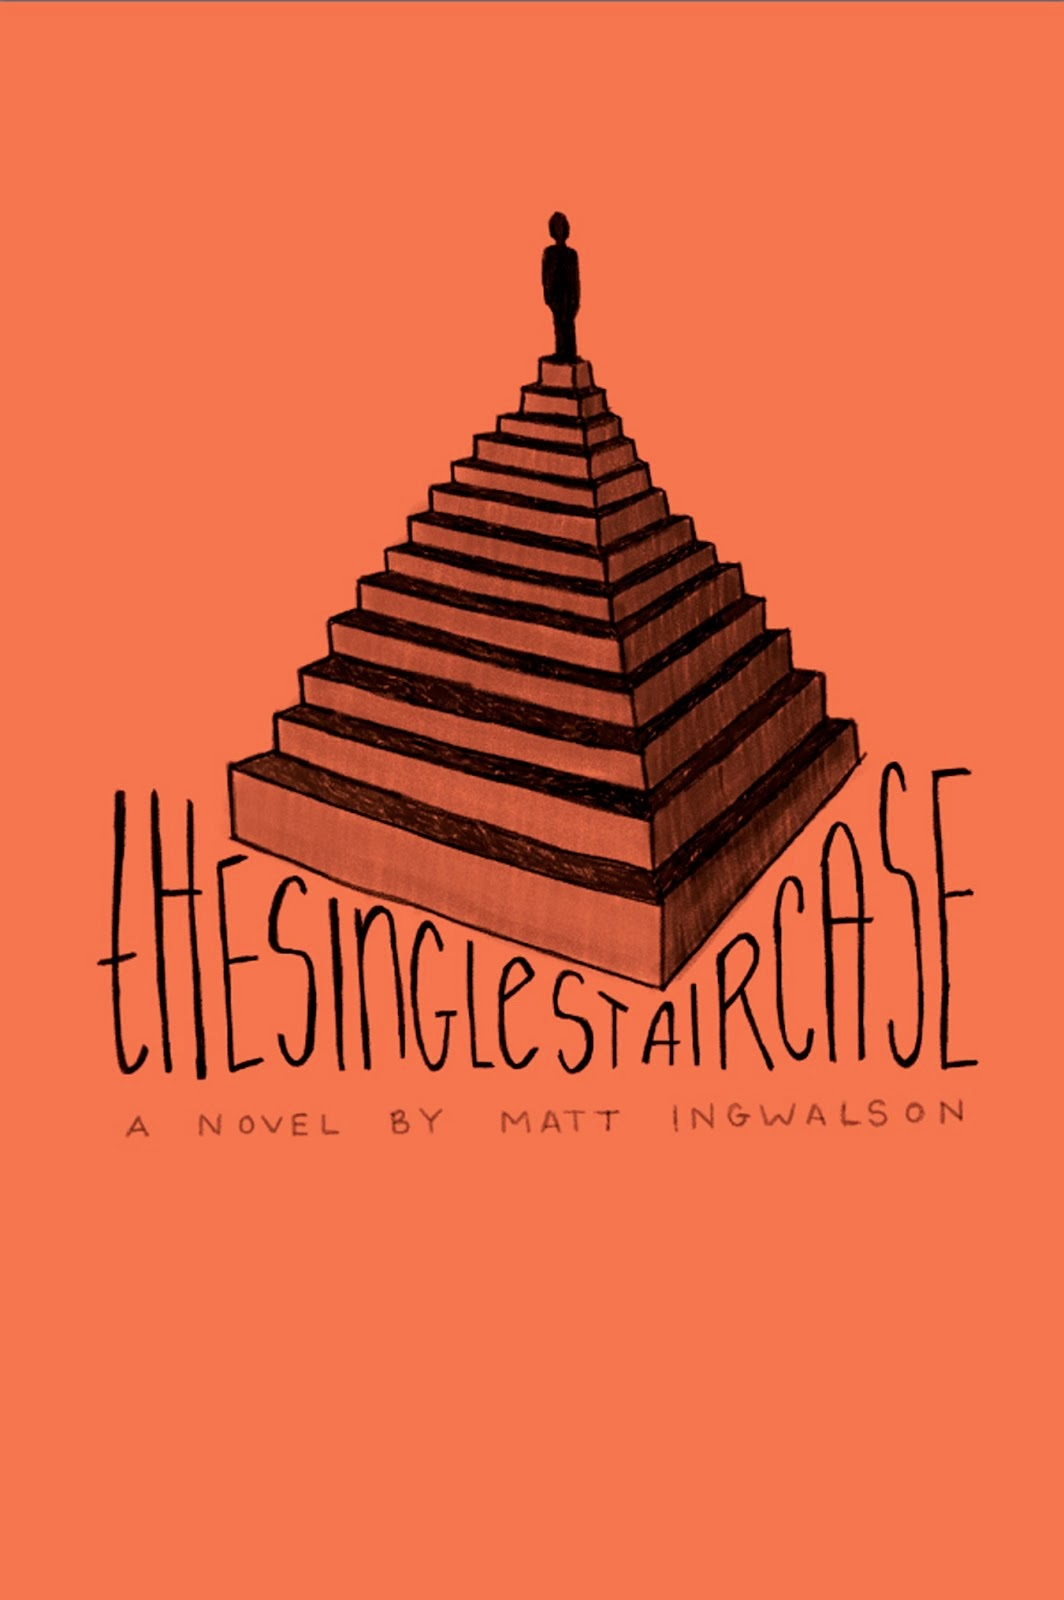 Buy The Single Staircase on Amazon